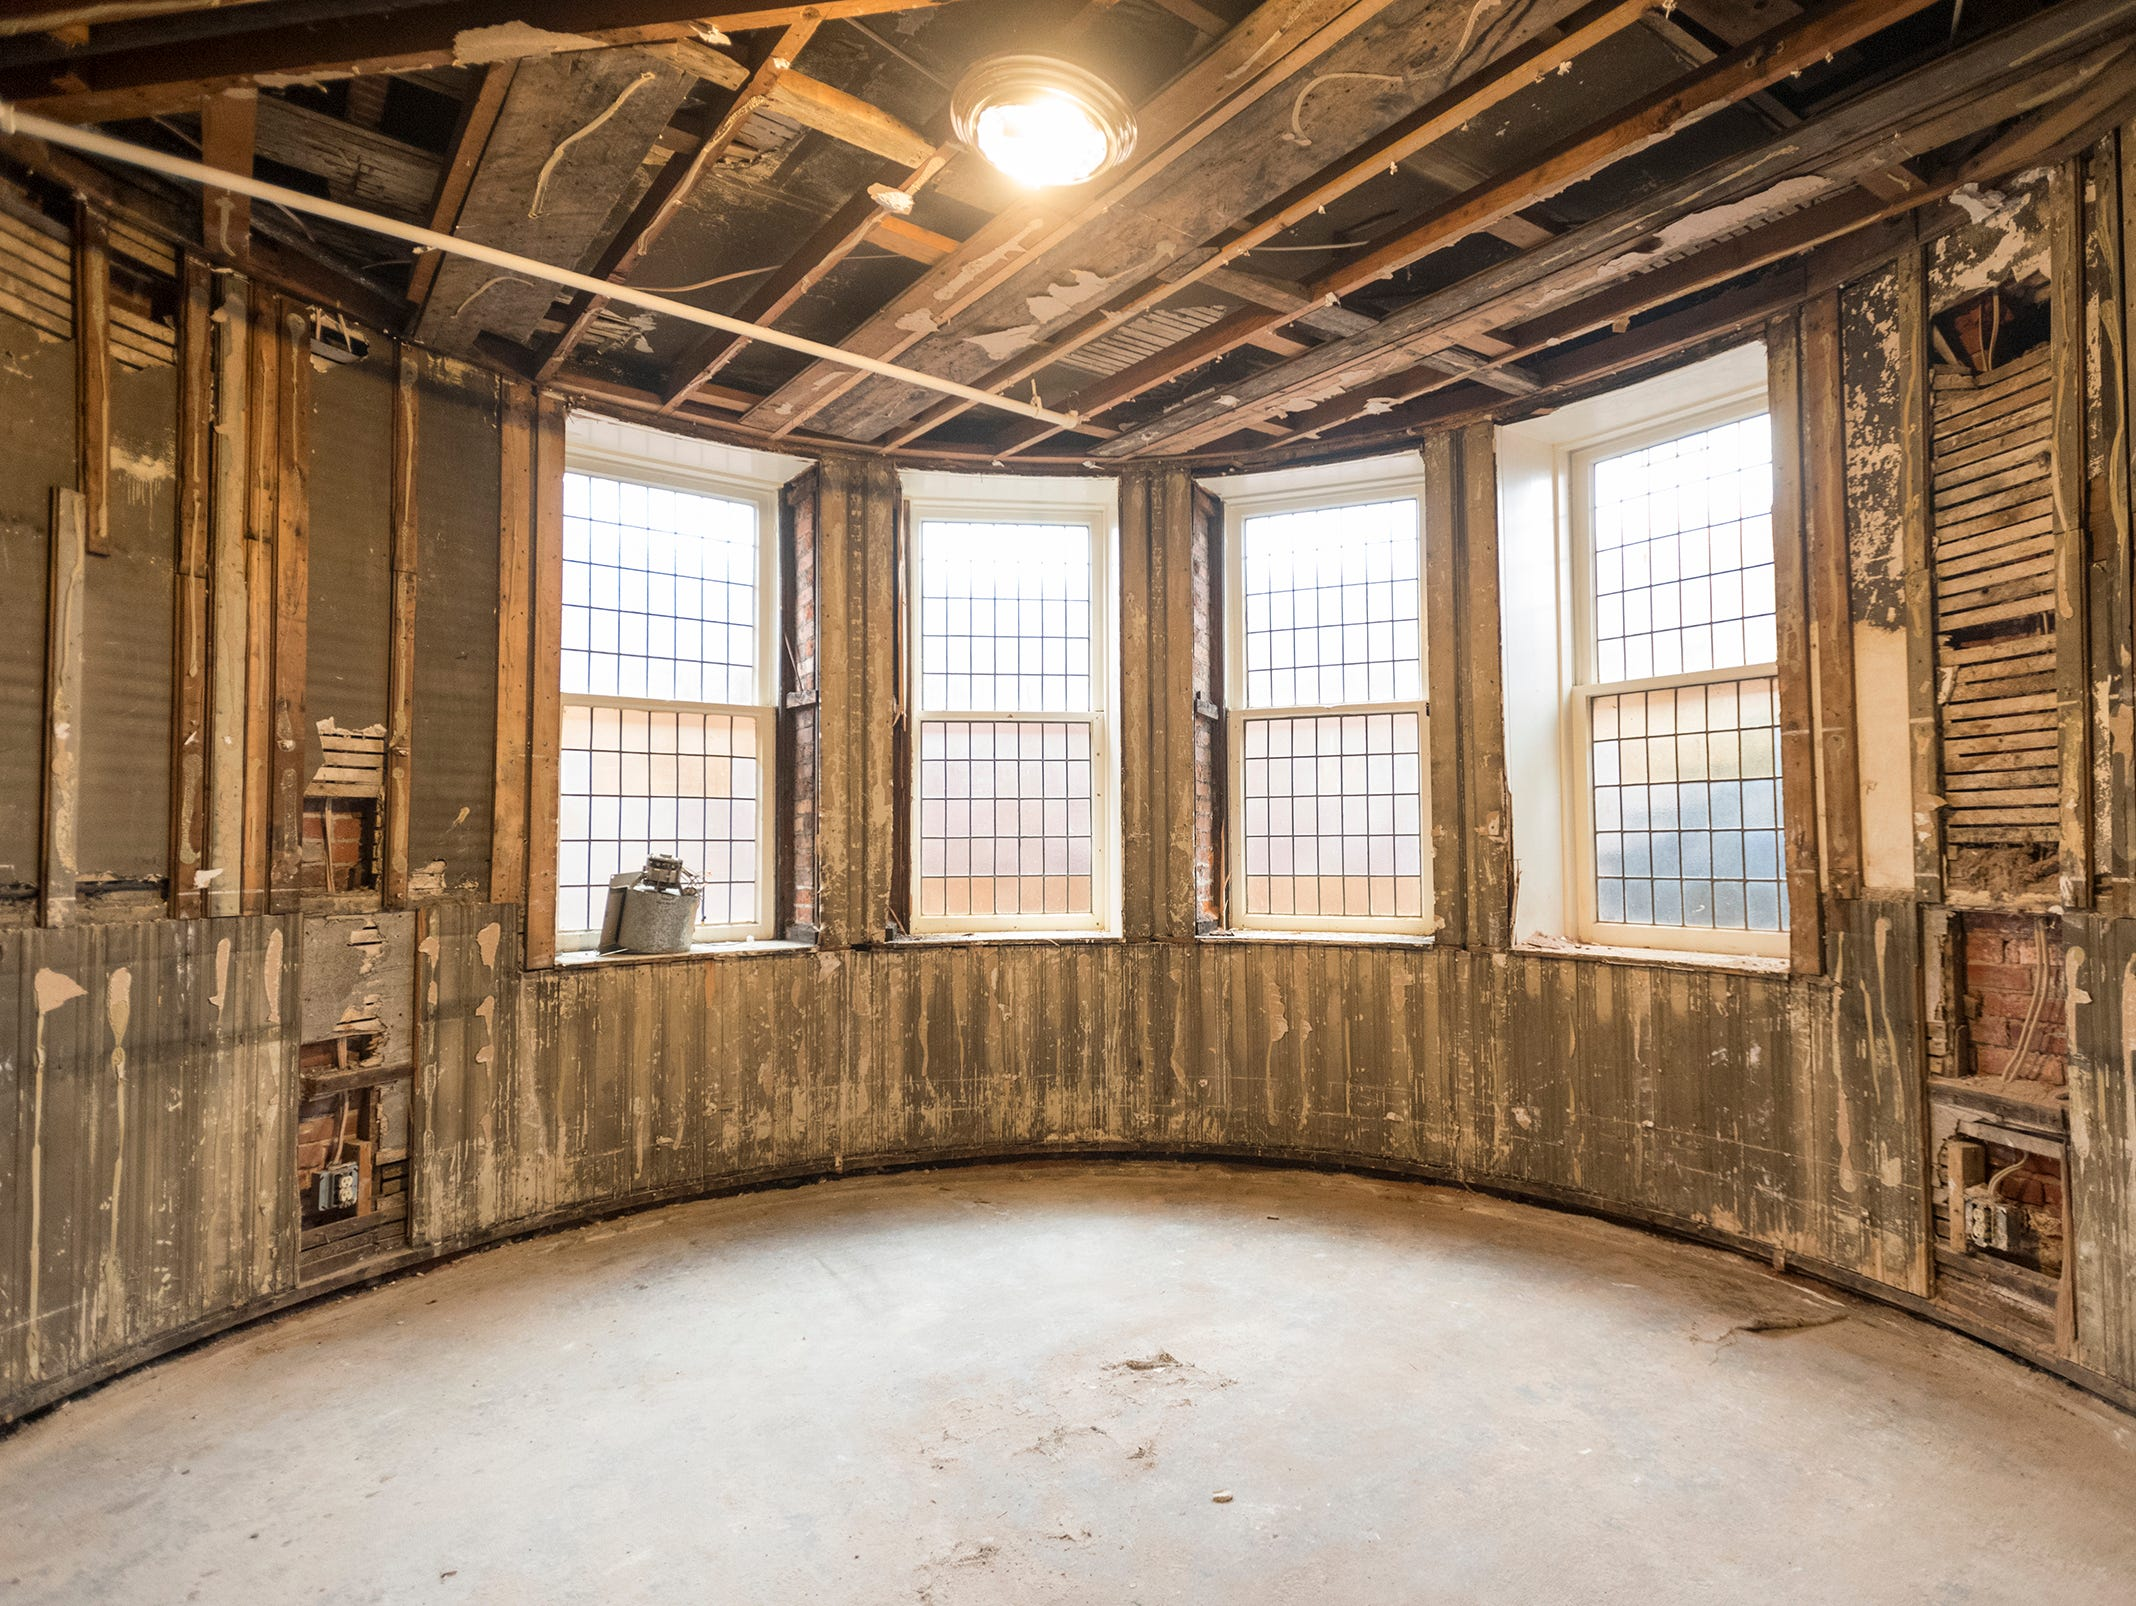 Developers plan to open a bar called Prohibition in the hotel's basement.